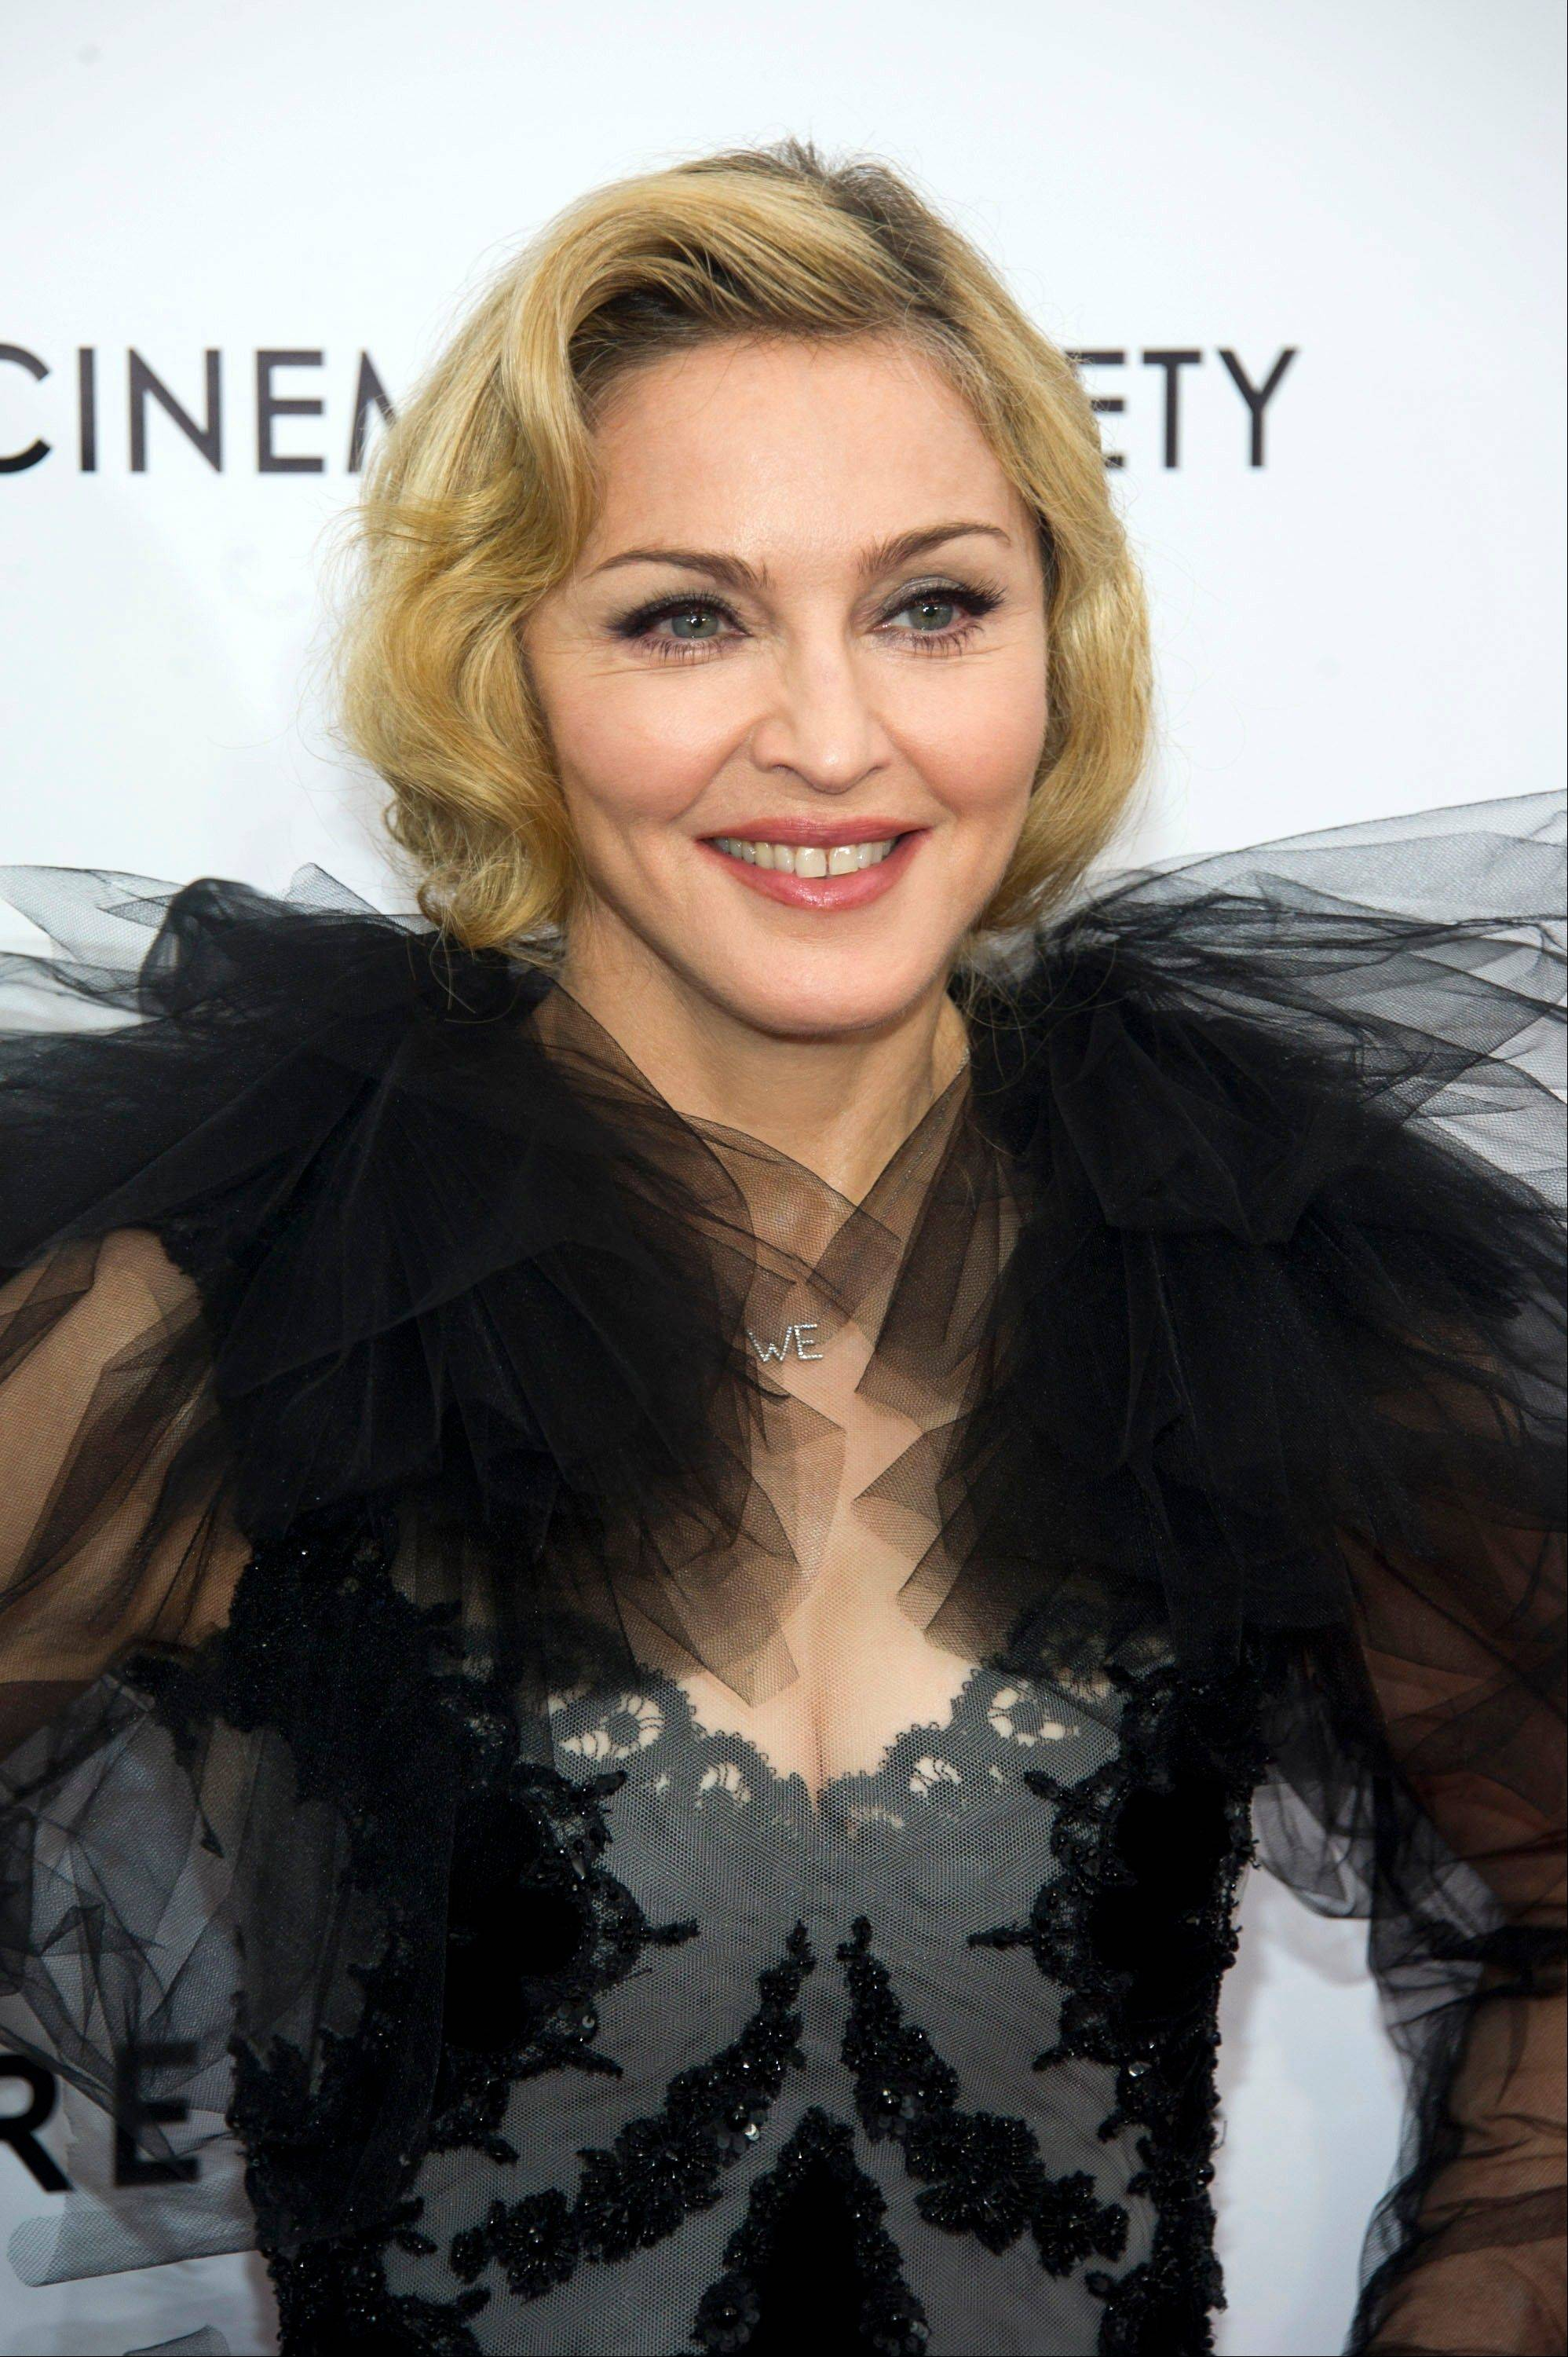 Do Super Bowl, church and Madonna mix?